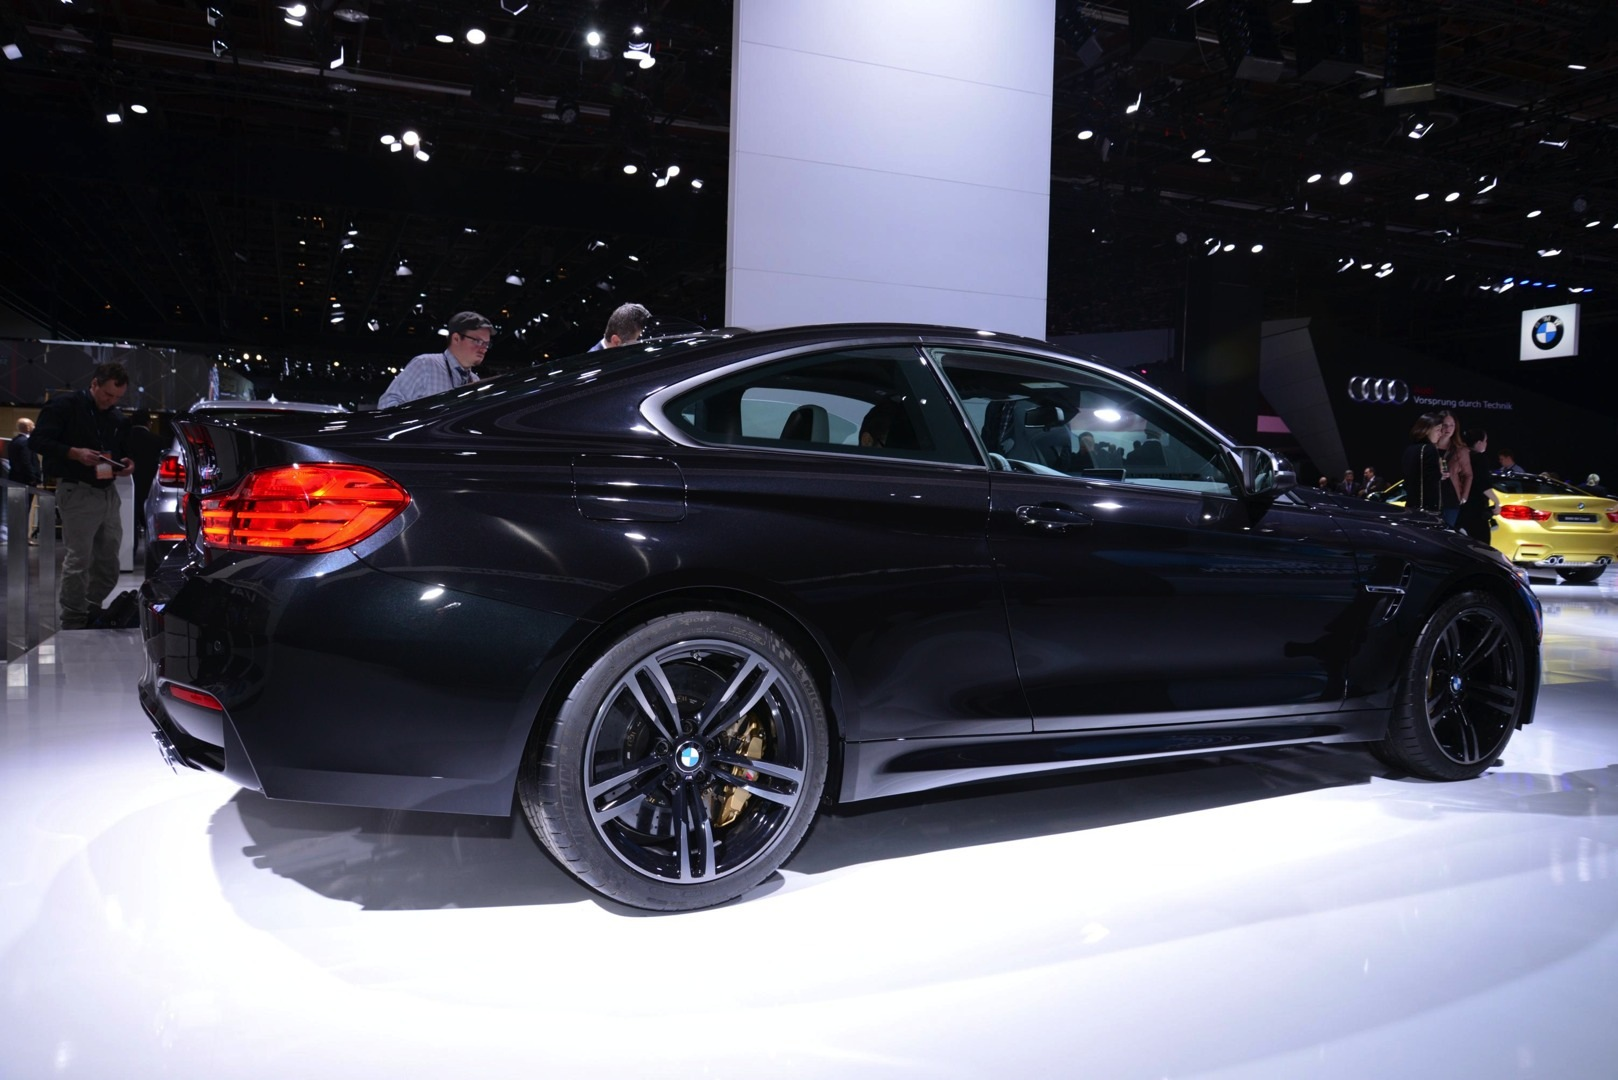 Sapphire Black Bmw M4 Looks Brilliant At 2014 Naias Live Photos Autoevolution